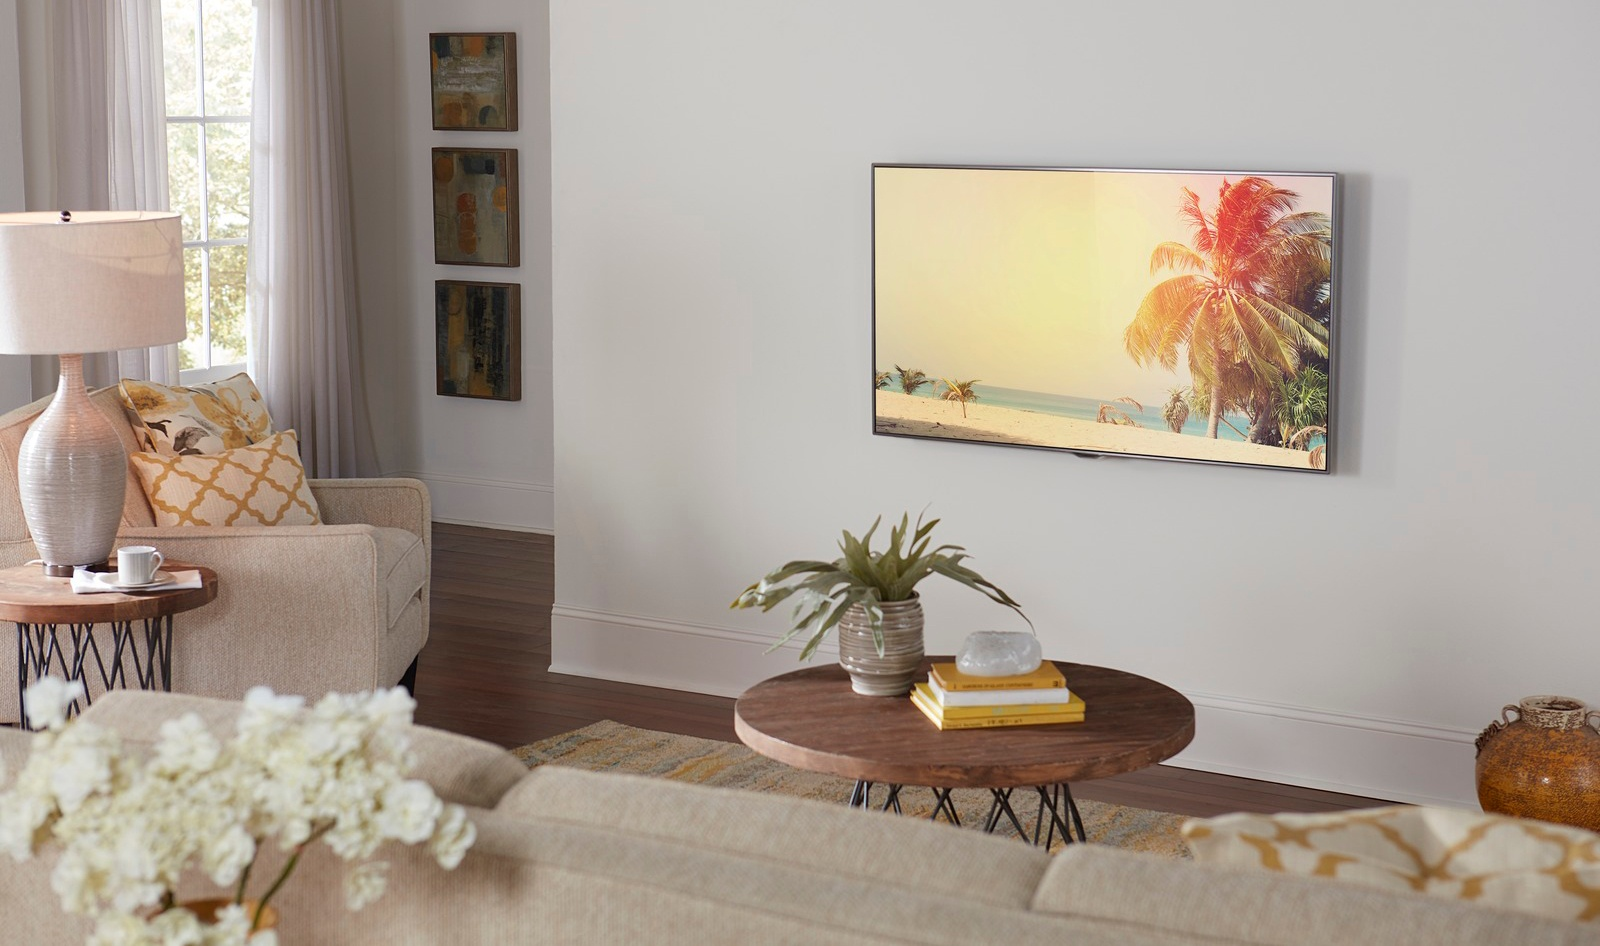 mount TV to wall